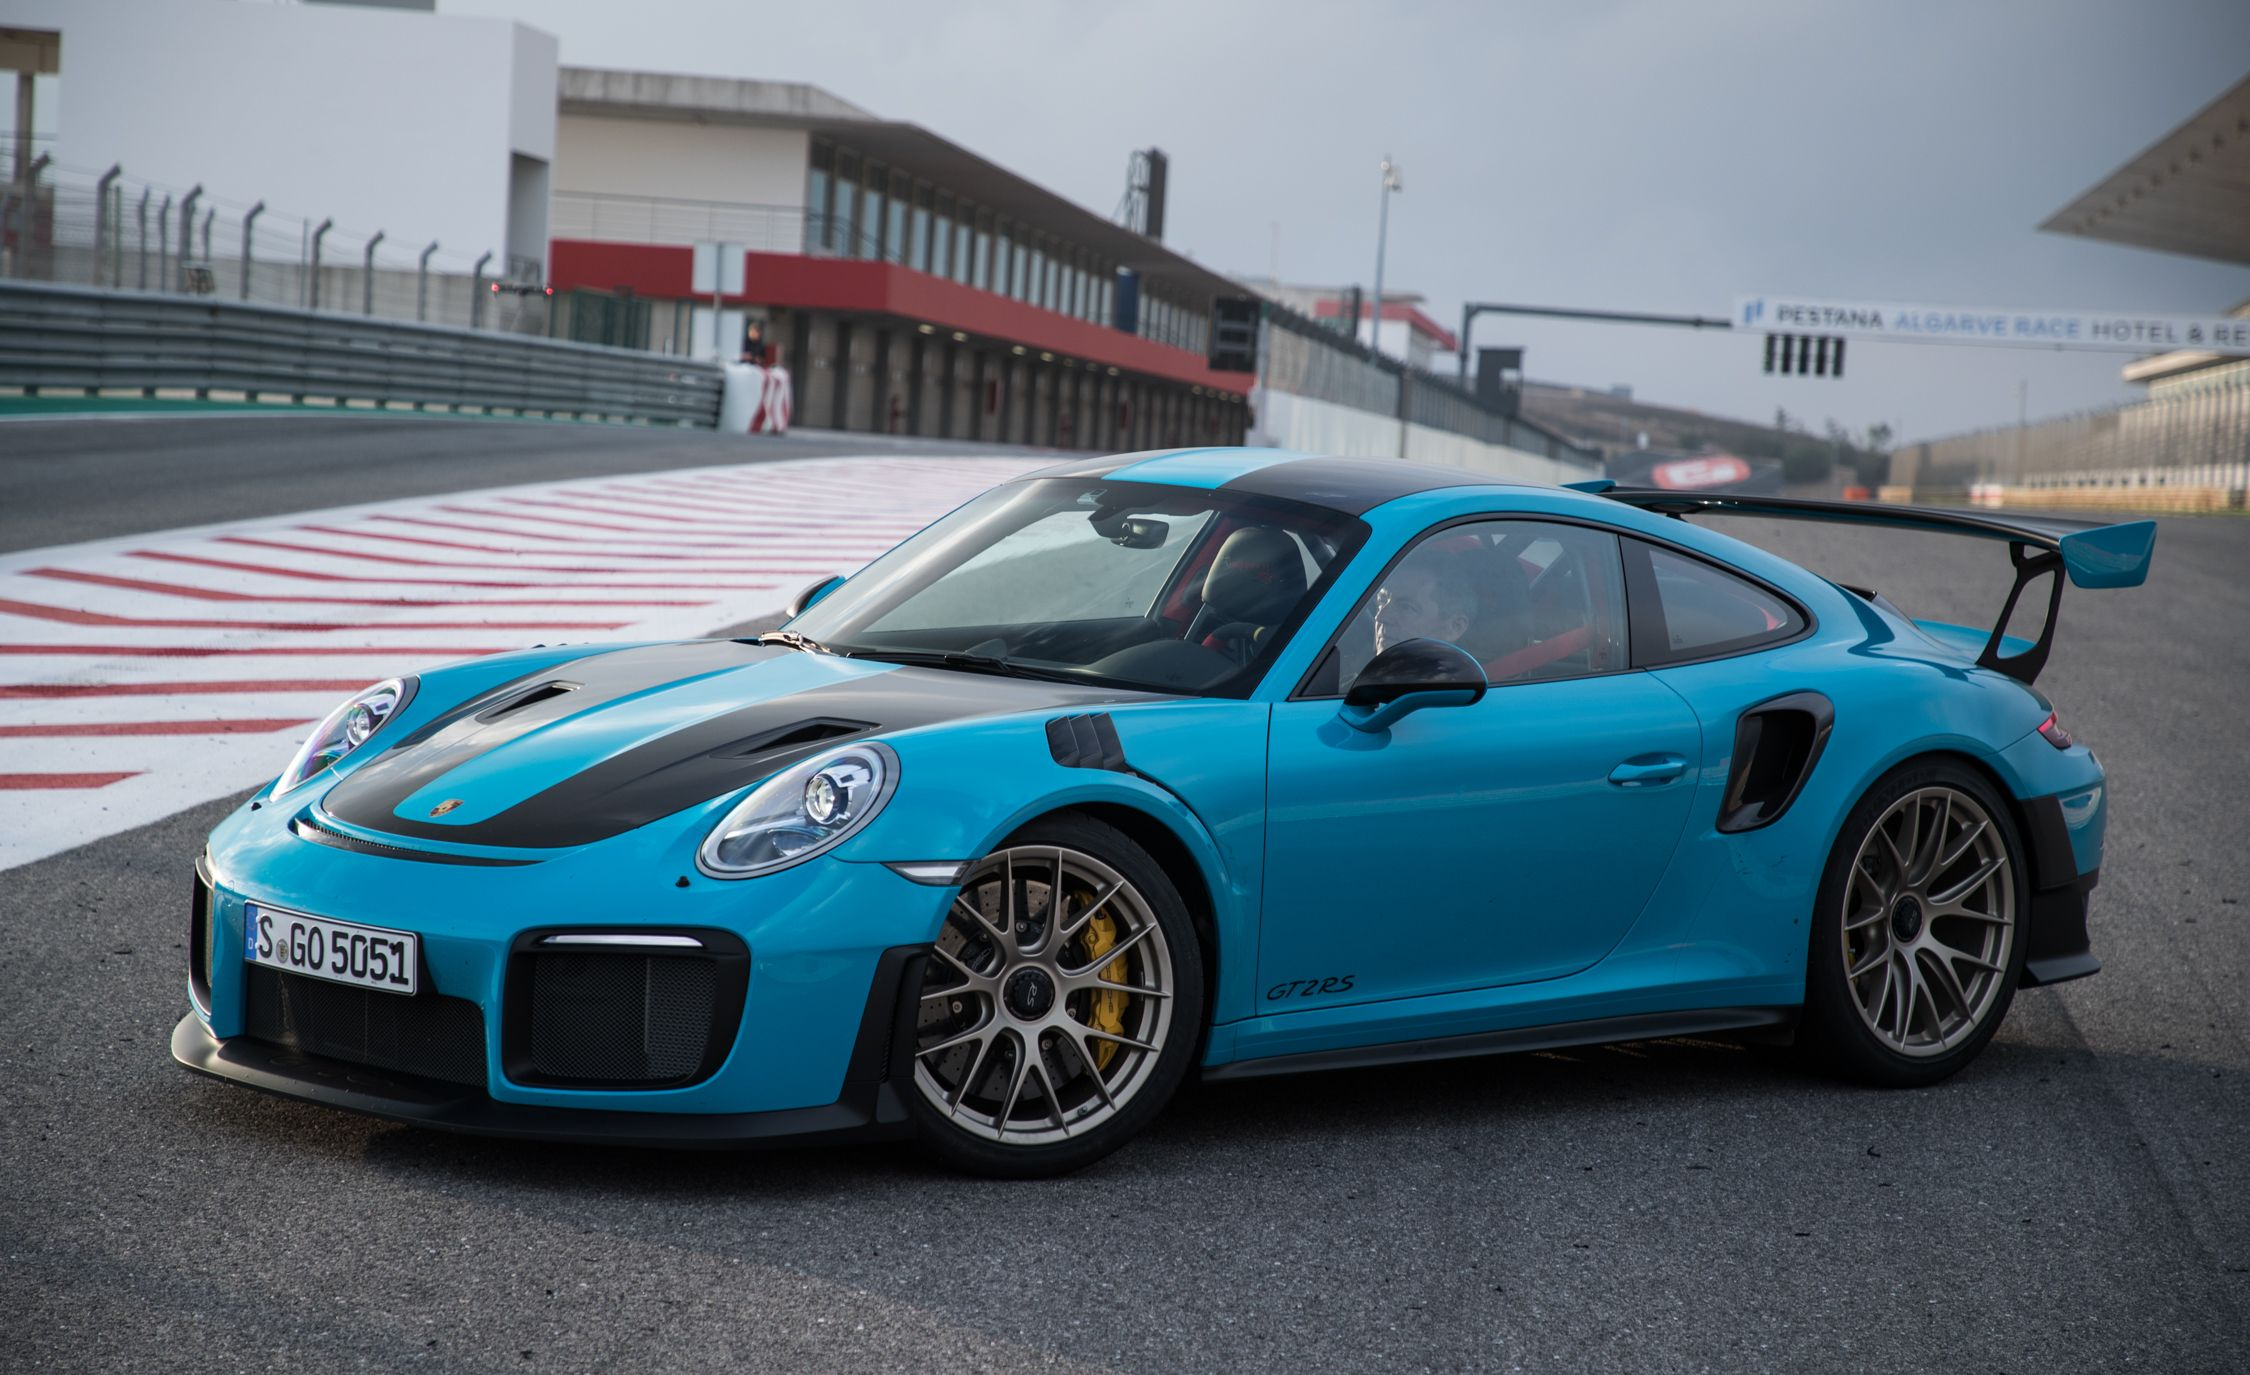 2019 Porsche 911 Gt2 Rs Reviews Price Photos And Specs Car Driver